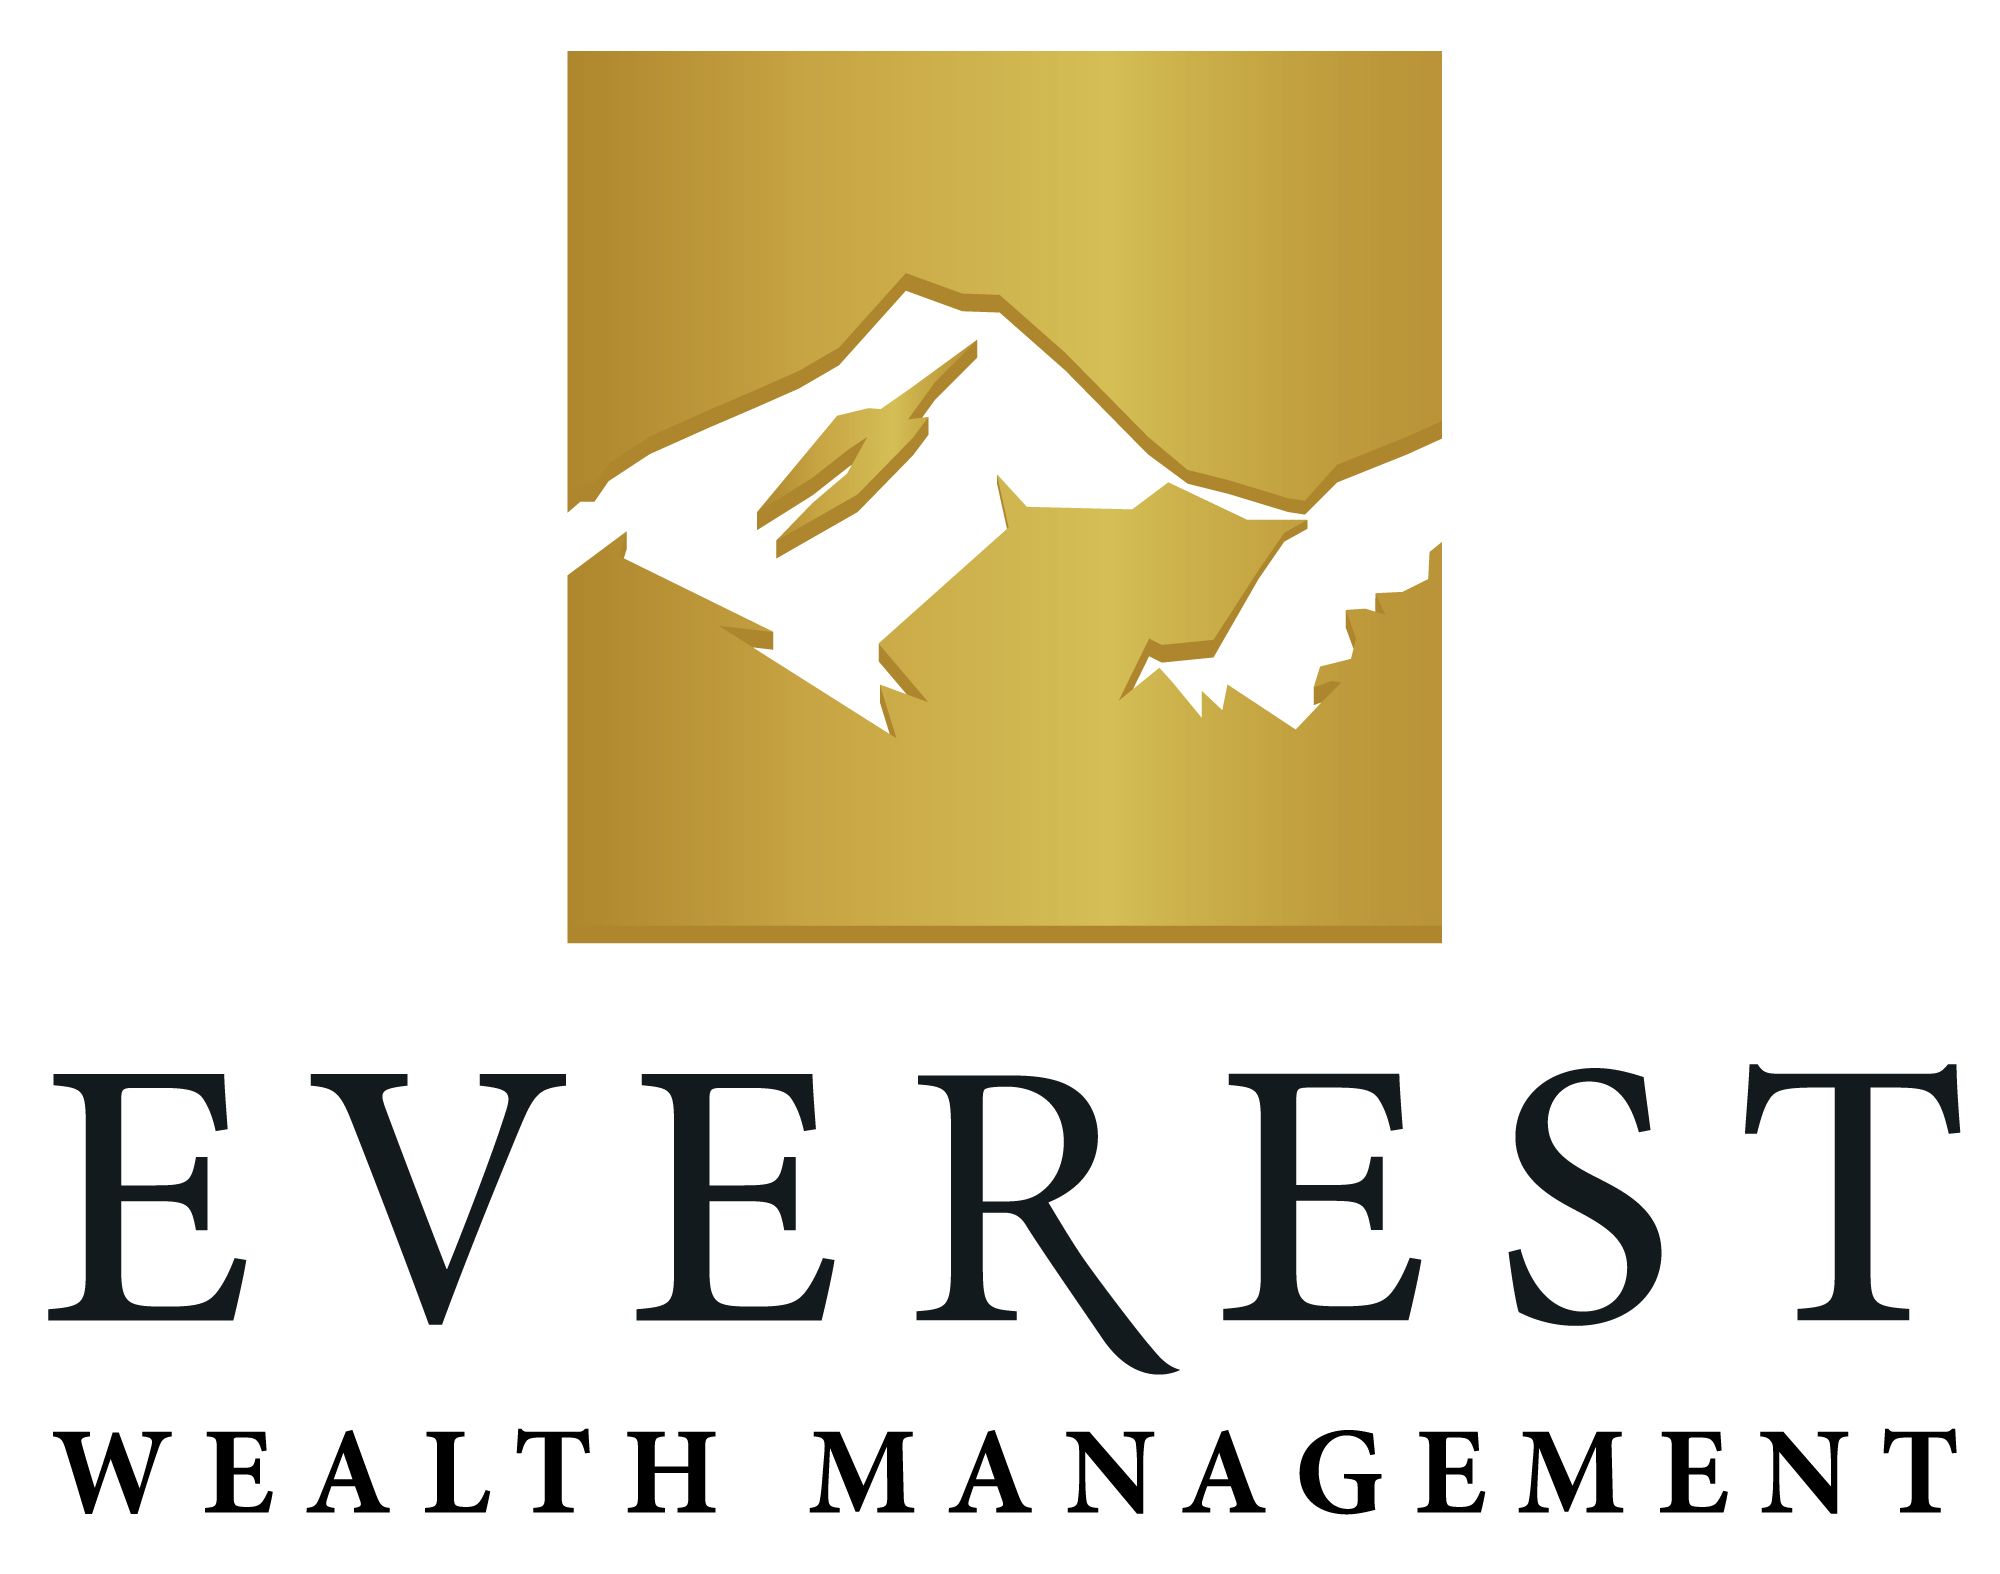 Everest wealth management reviews